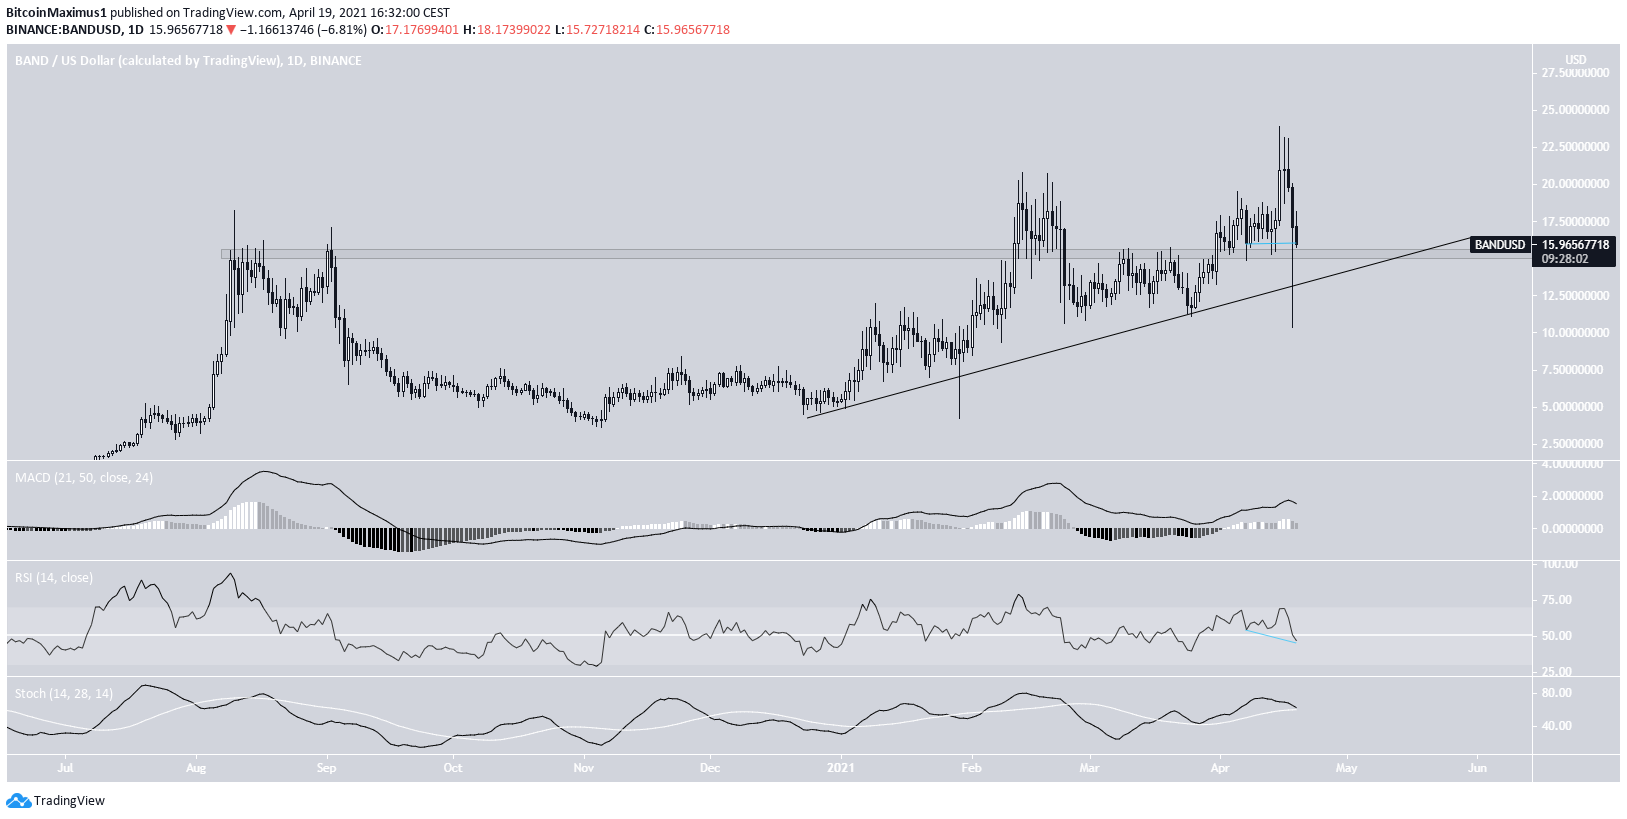 BAND Long-Term Support